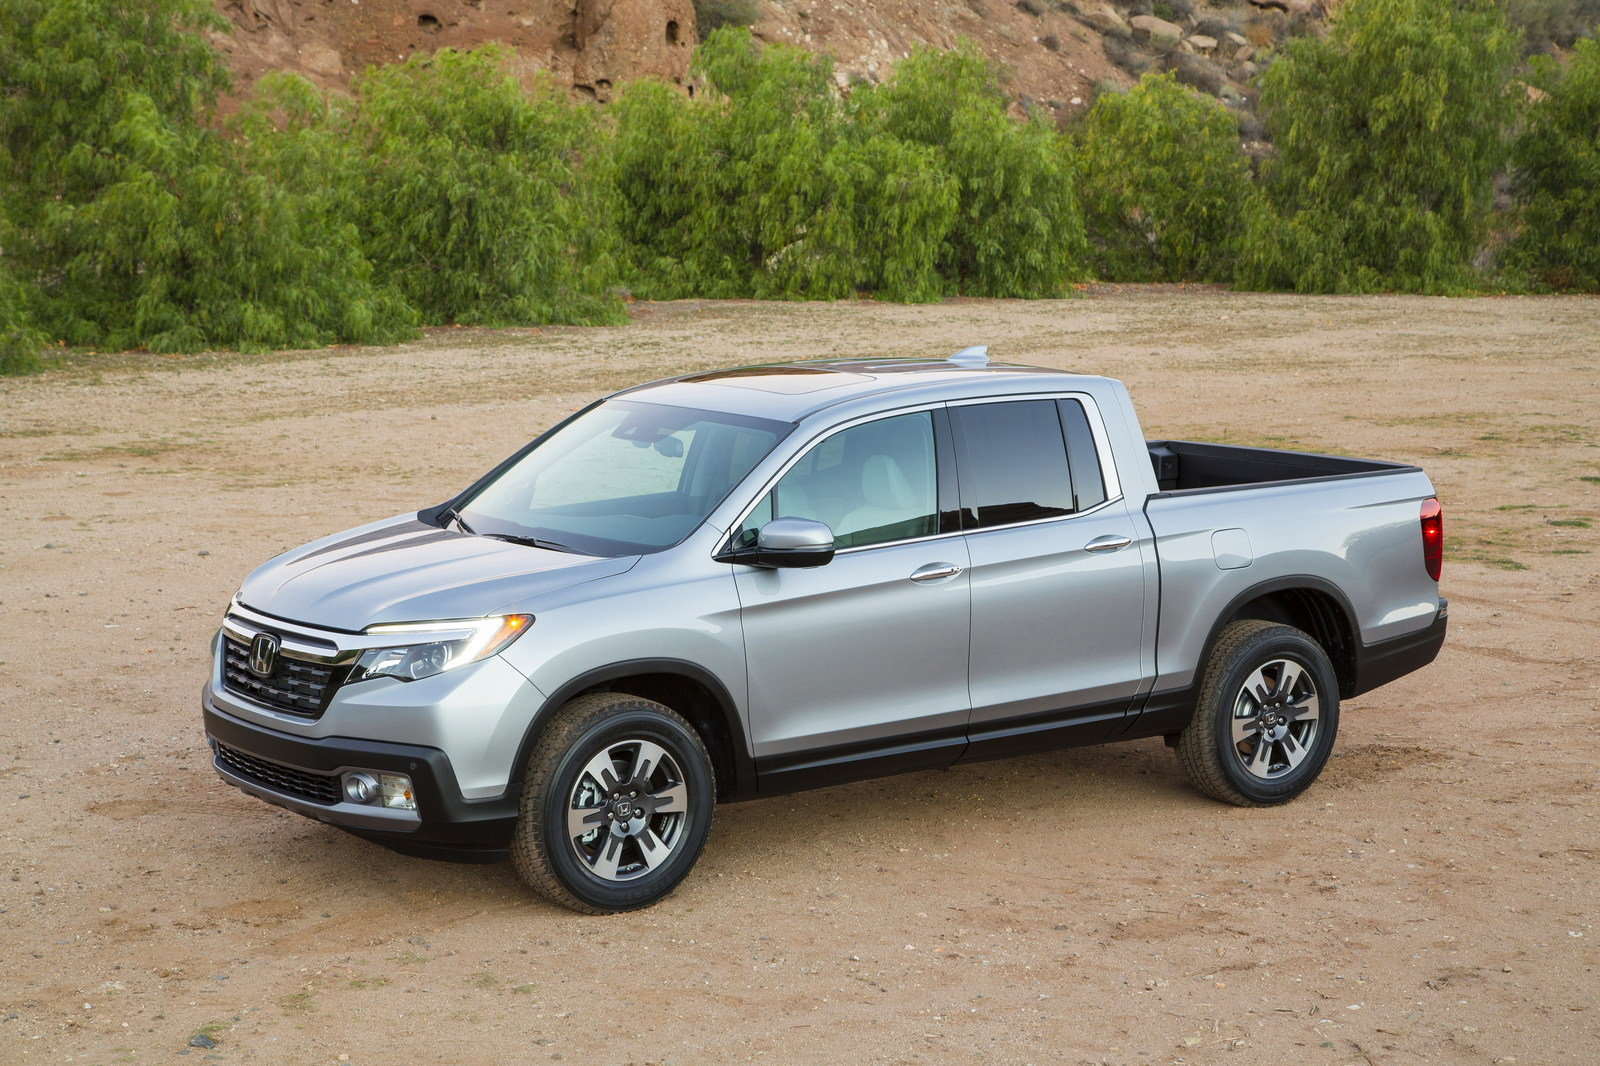 2017 honda ridgeline picture 661614 truck review top speed. Black Bedroom Furniture Sets. Home Design Ideas